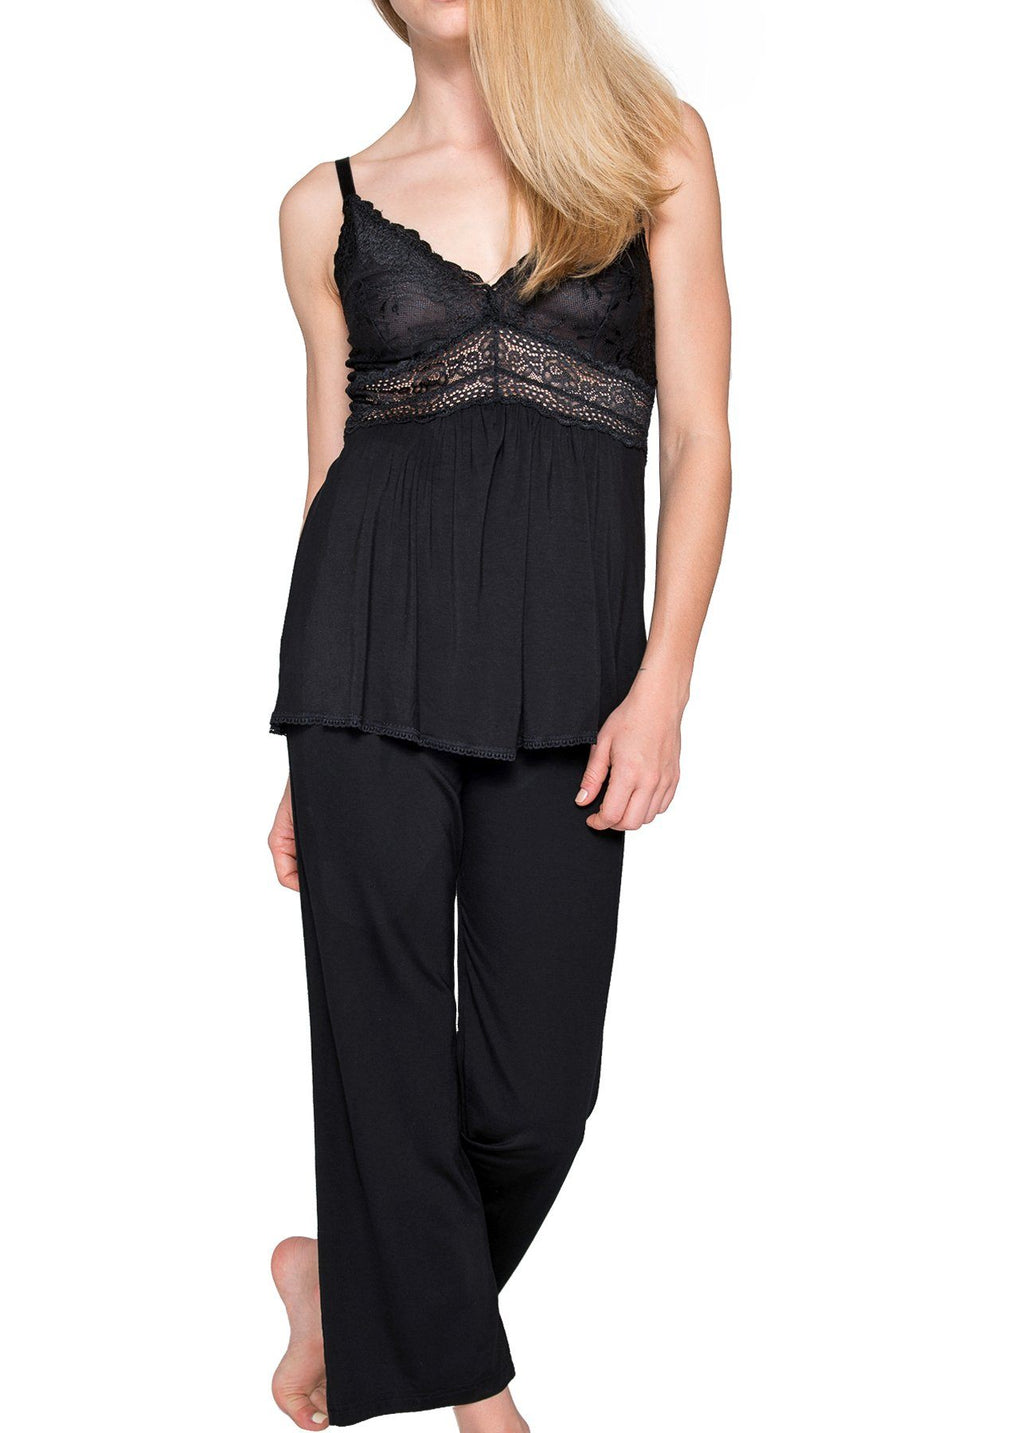 Bliss Pajama Set - Black Mystique Intimates